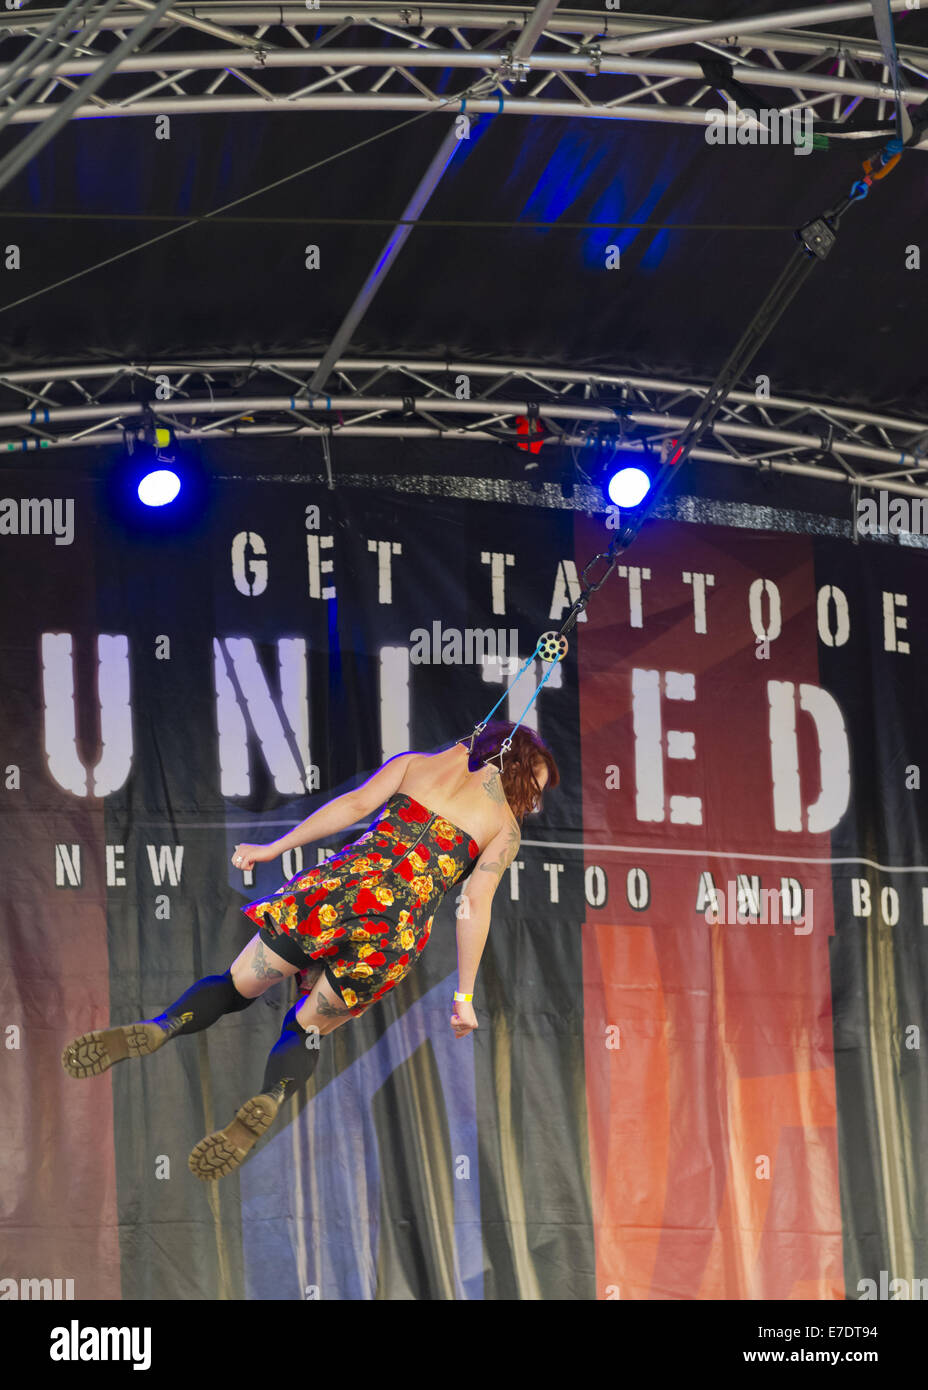 Garden City, New York, USA. 14th Sep, 2014. Young woman with tattoos is suspended from two ropes with hooks pierced - Stock Image